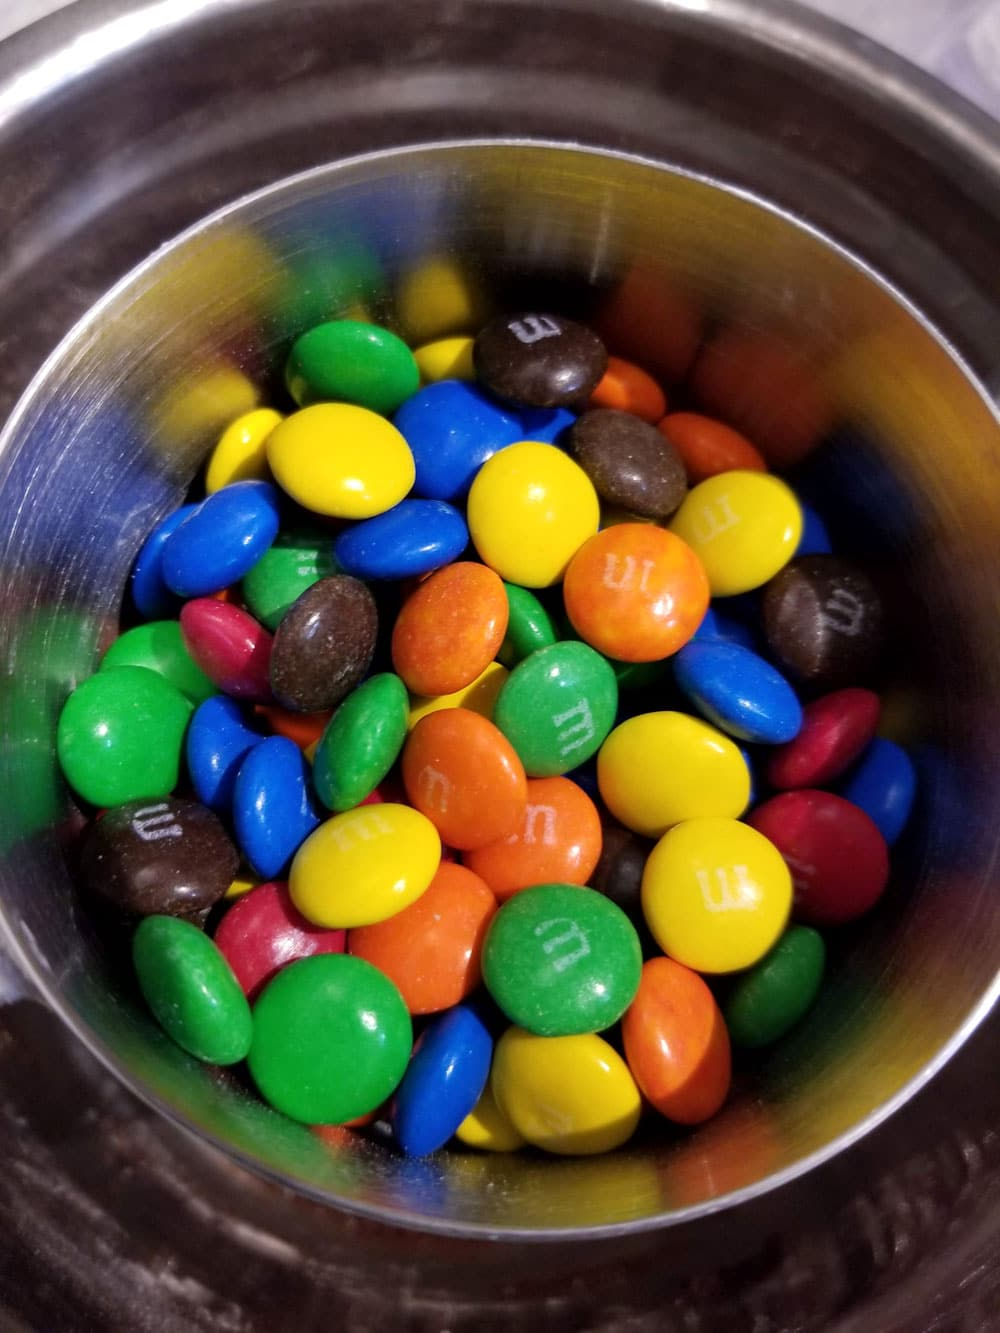 m&m candies for making cookies